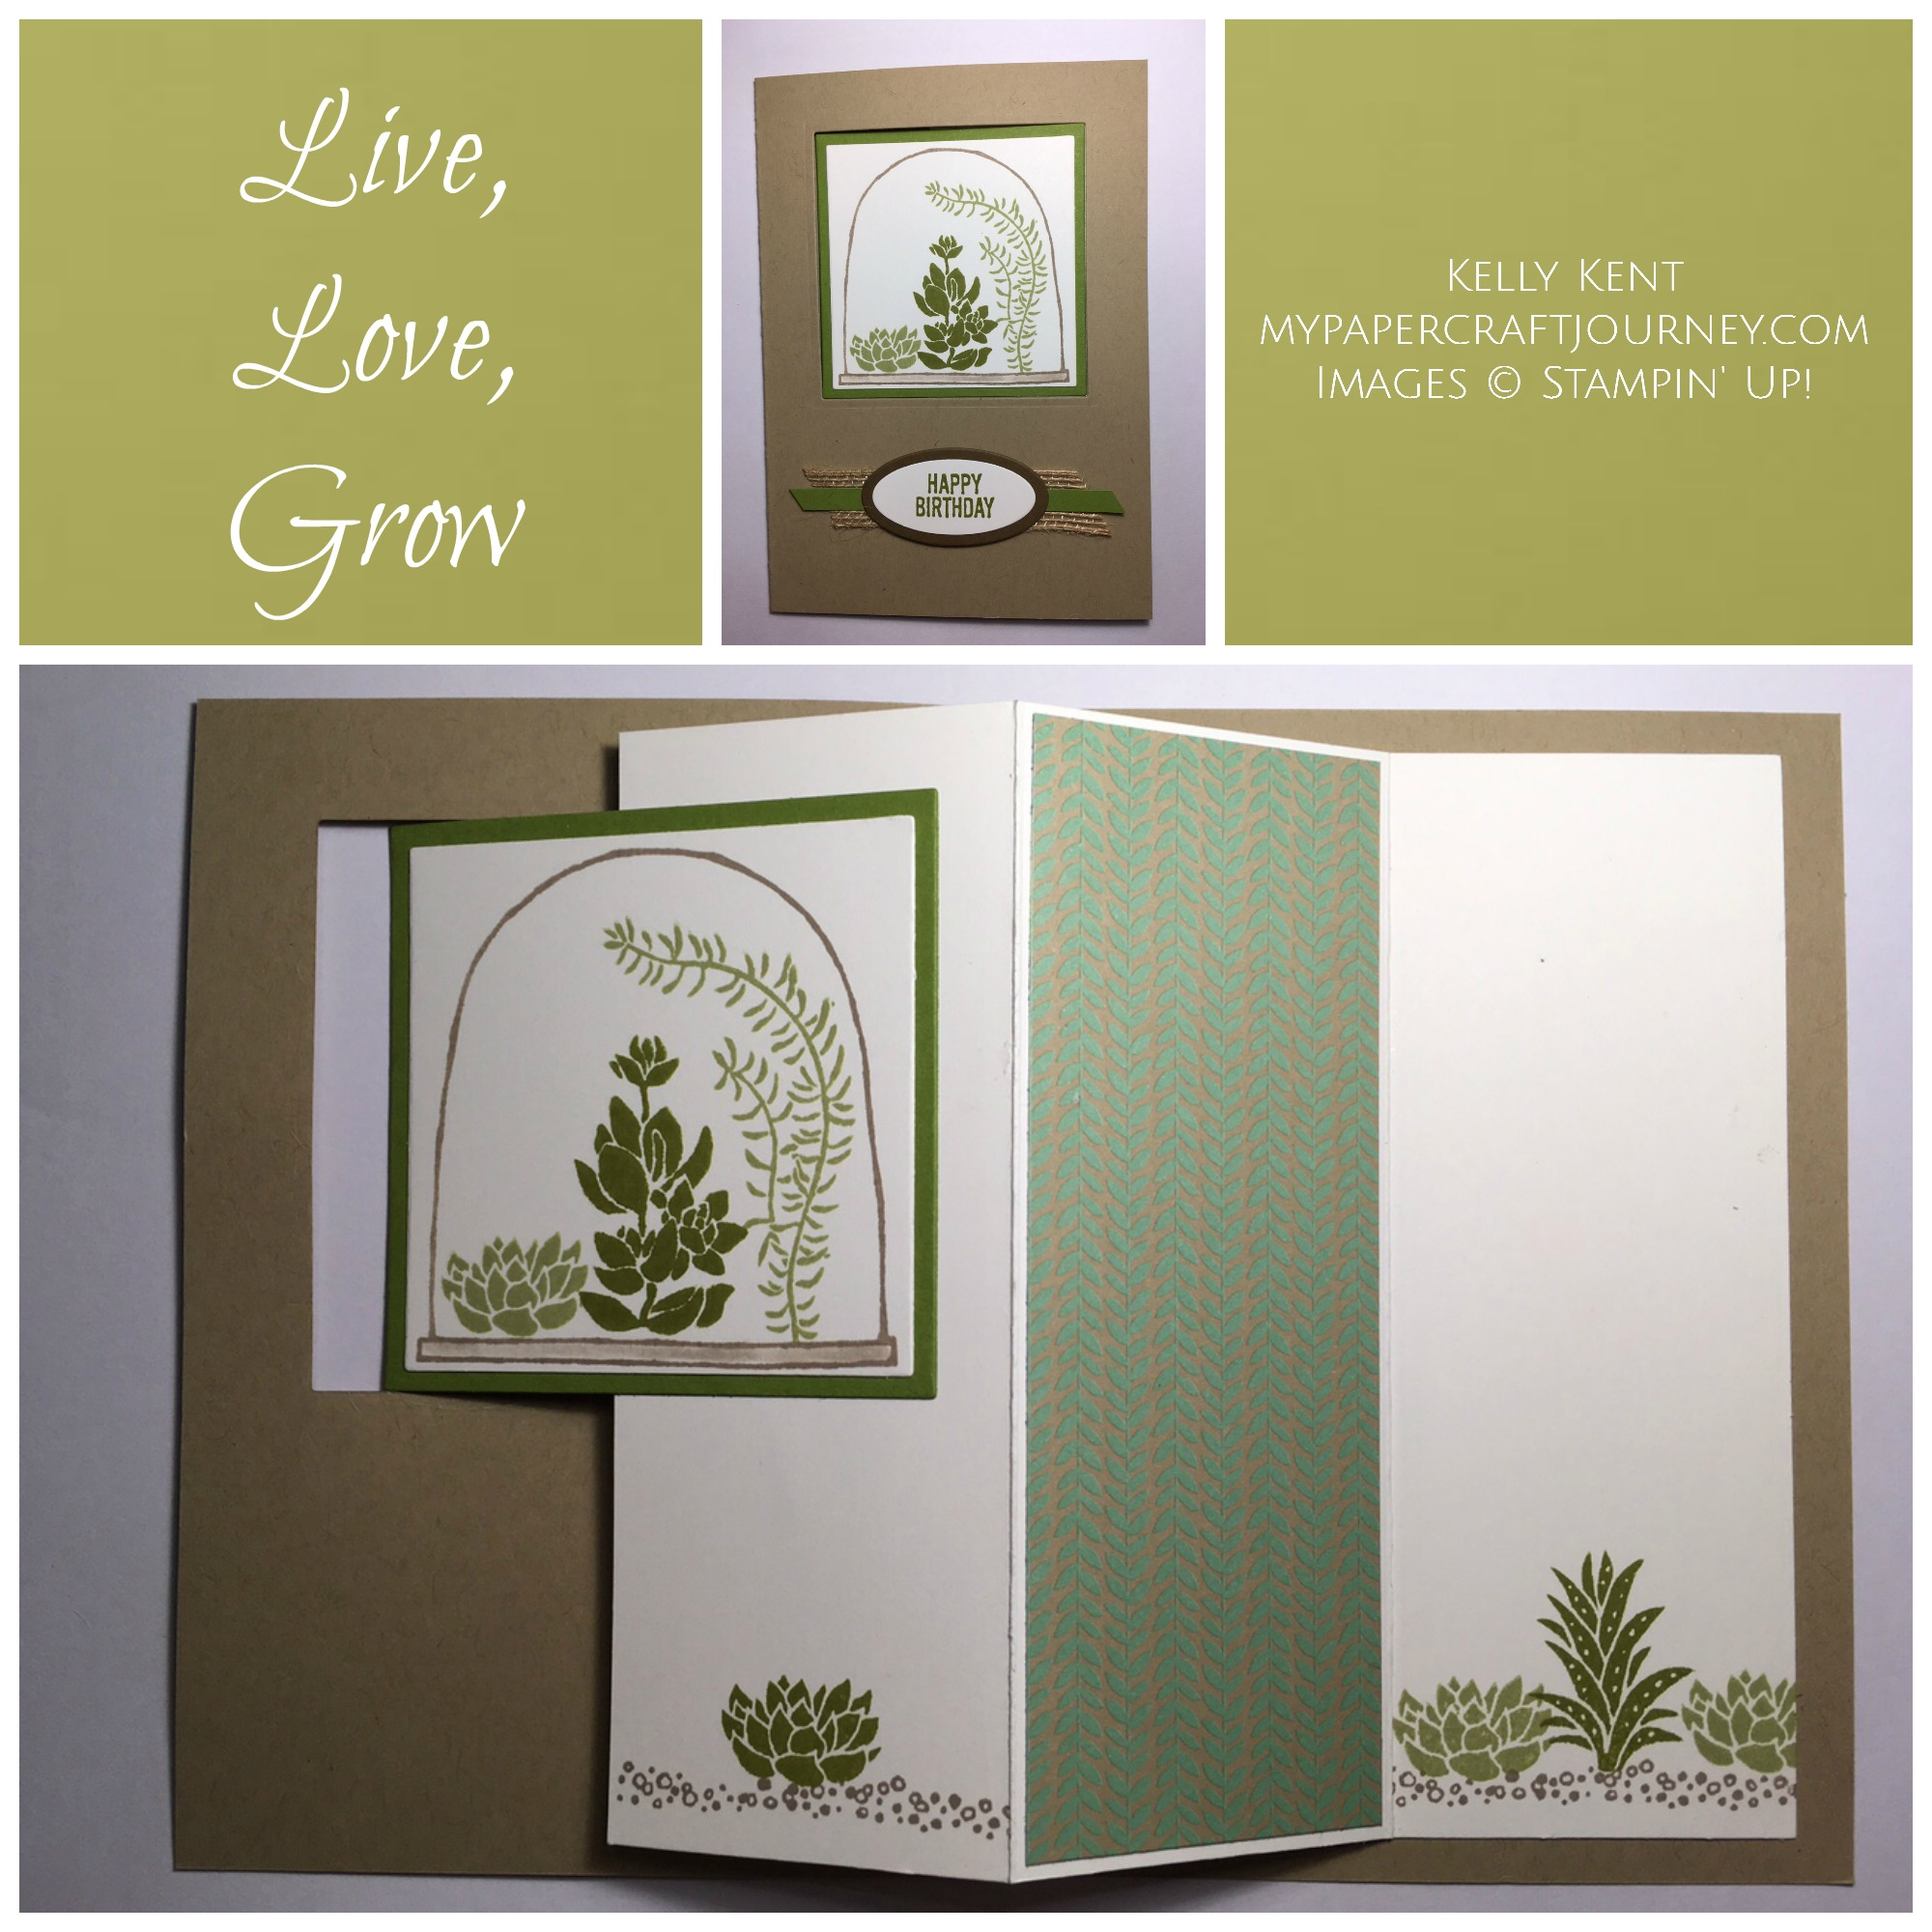 Live, Love, Grow Terranium Pop Out Swing Card. Kelly Kent - mypapercraftjourney.com.